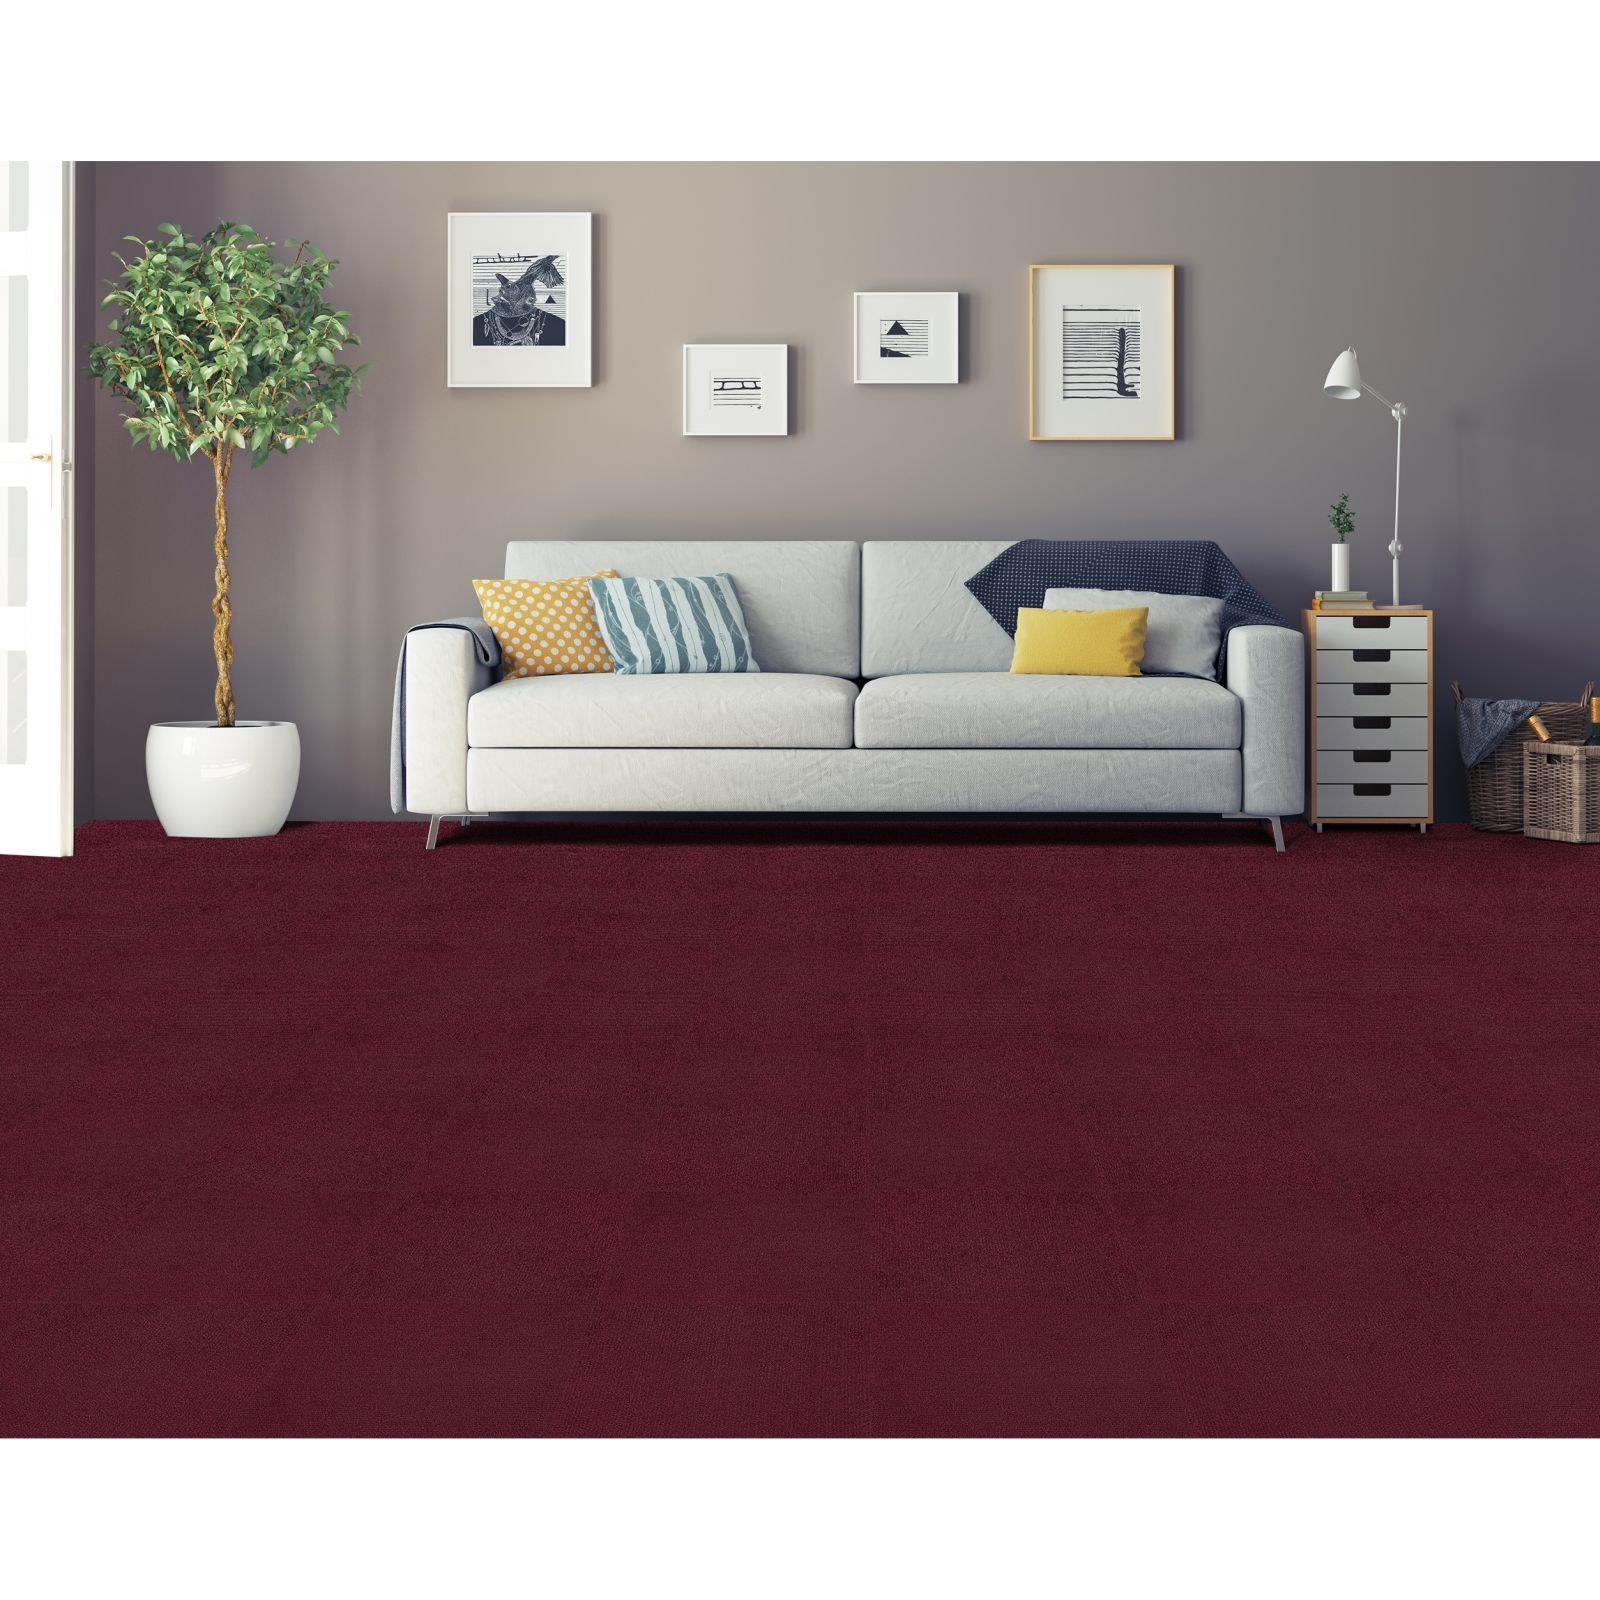 Shop For Achim Nexus Burgundy Self Adhesive Carpet Floor Tile 12 Tiles Get Free Shipping On Everything At Overstock Your Online Home Improvement Outlet Store Get 5 In Rewards With Club O 14290521